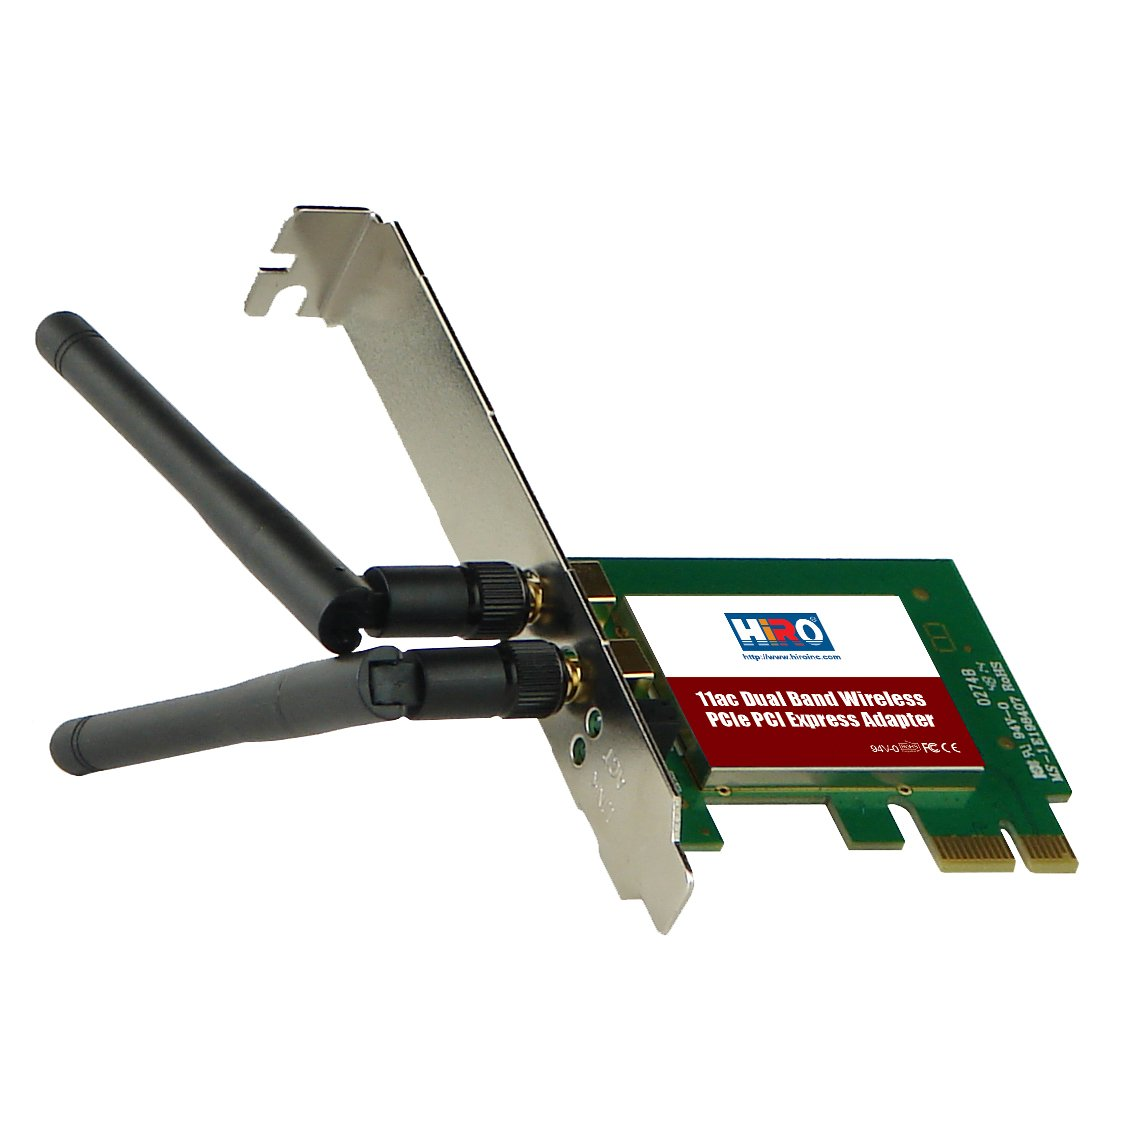 HIRO H50319 Dual Band Wireless 802.11ac AC1200 11ac WiFi 2T2R 867Mbps PCIe PCI Express PCI-E x1 Adapter 2 x 2dBi Dipole Antenna Windows 10 8.1 8 7